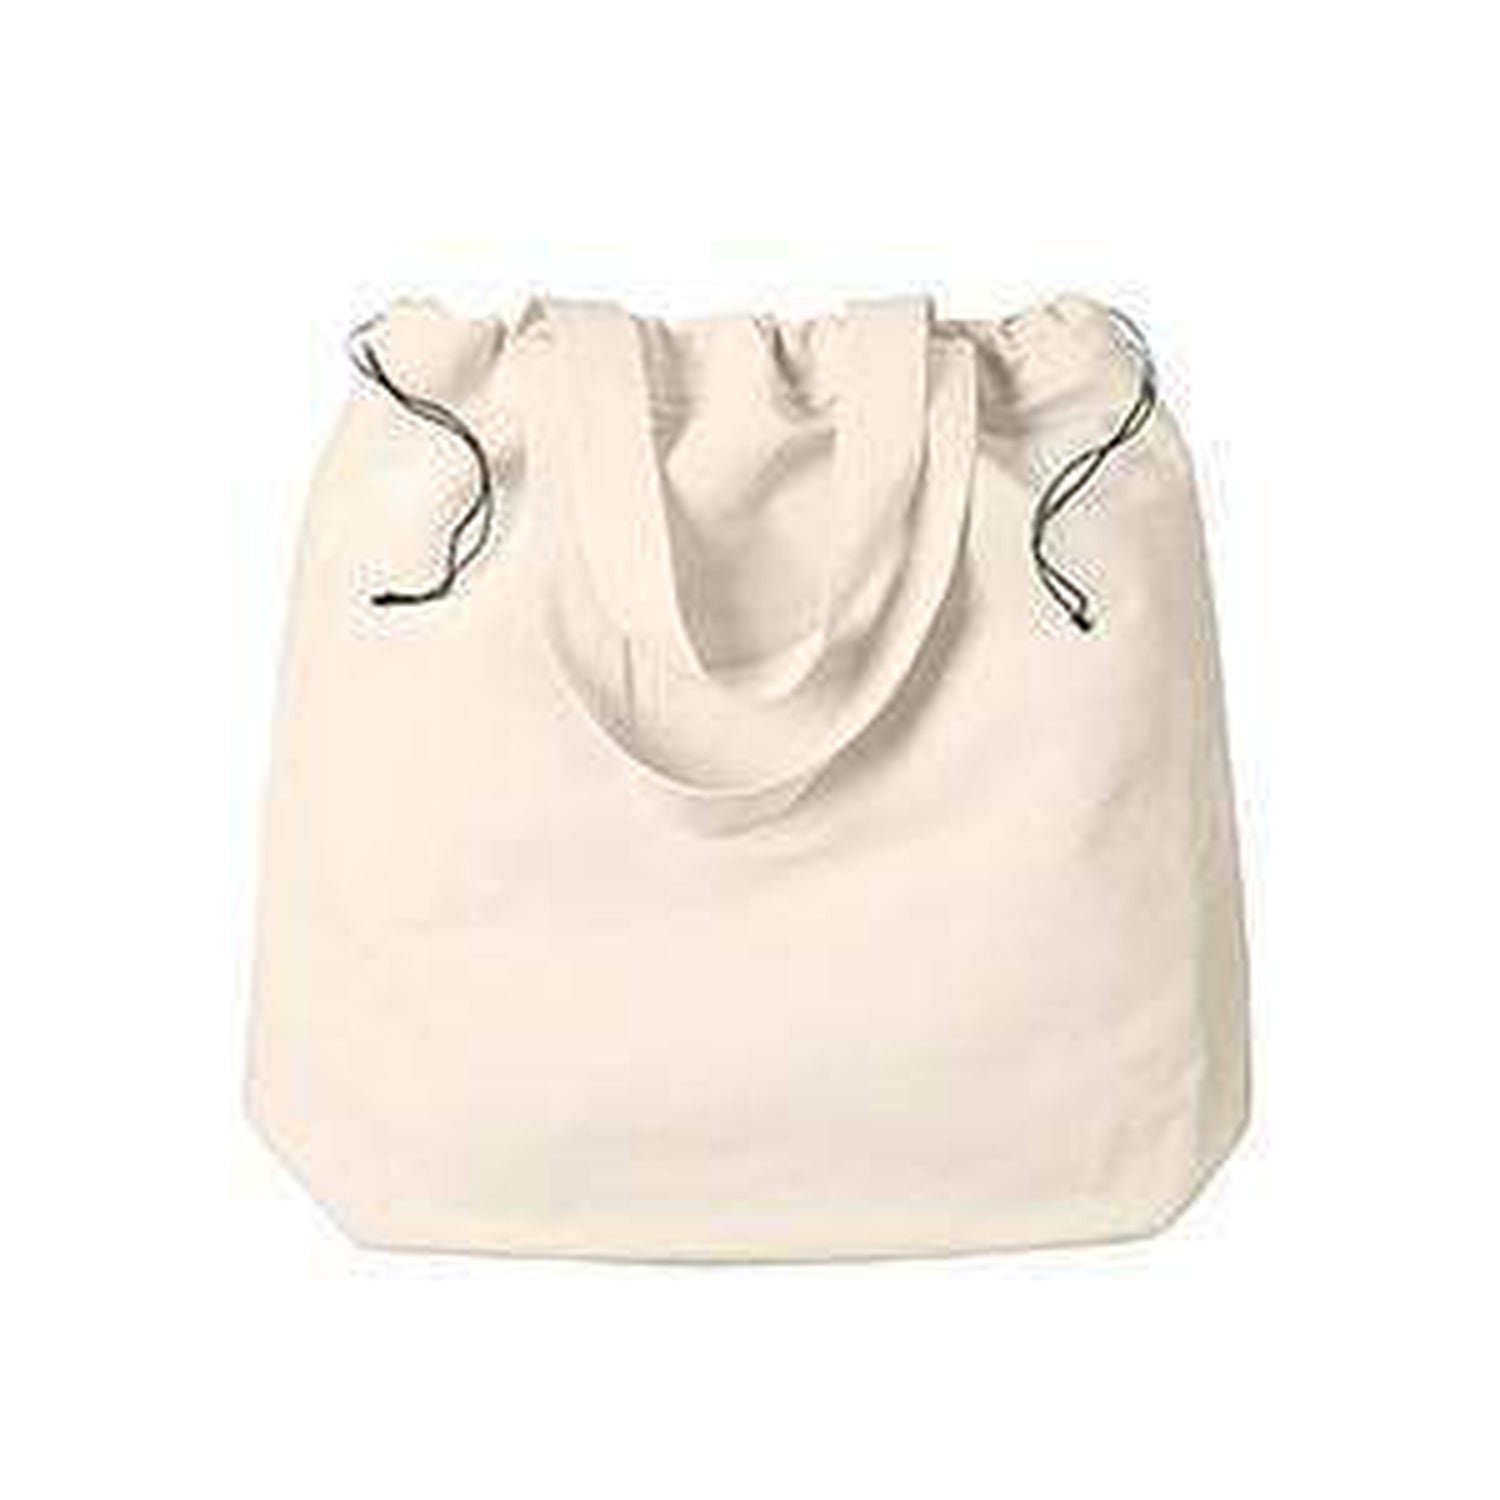 Bagedge New Self Fabric Handles Drawstring Closure Tote Bag BE087